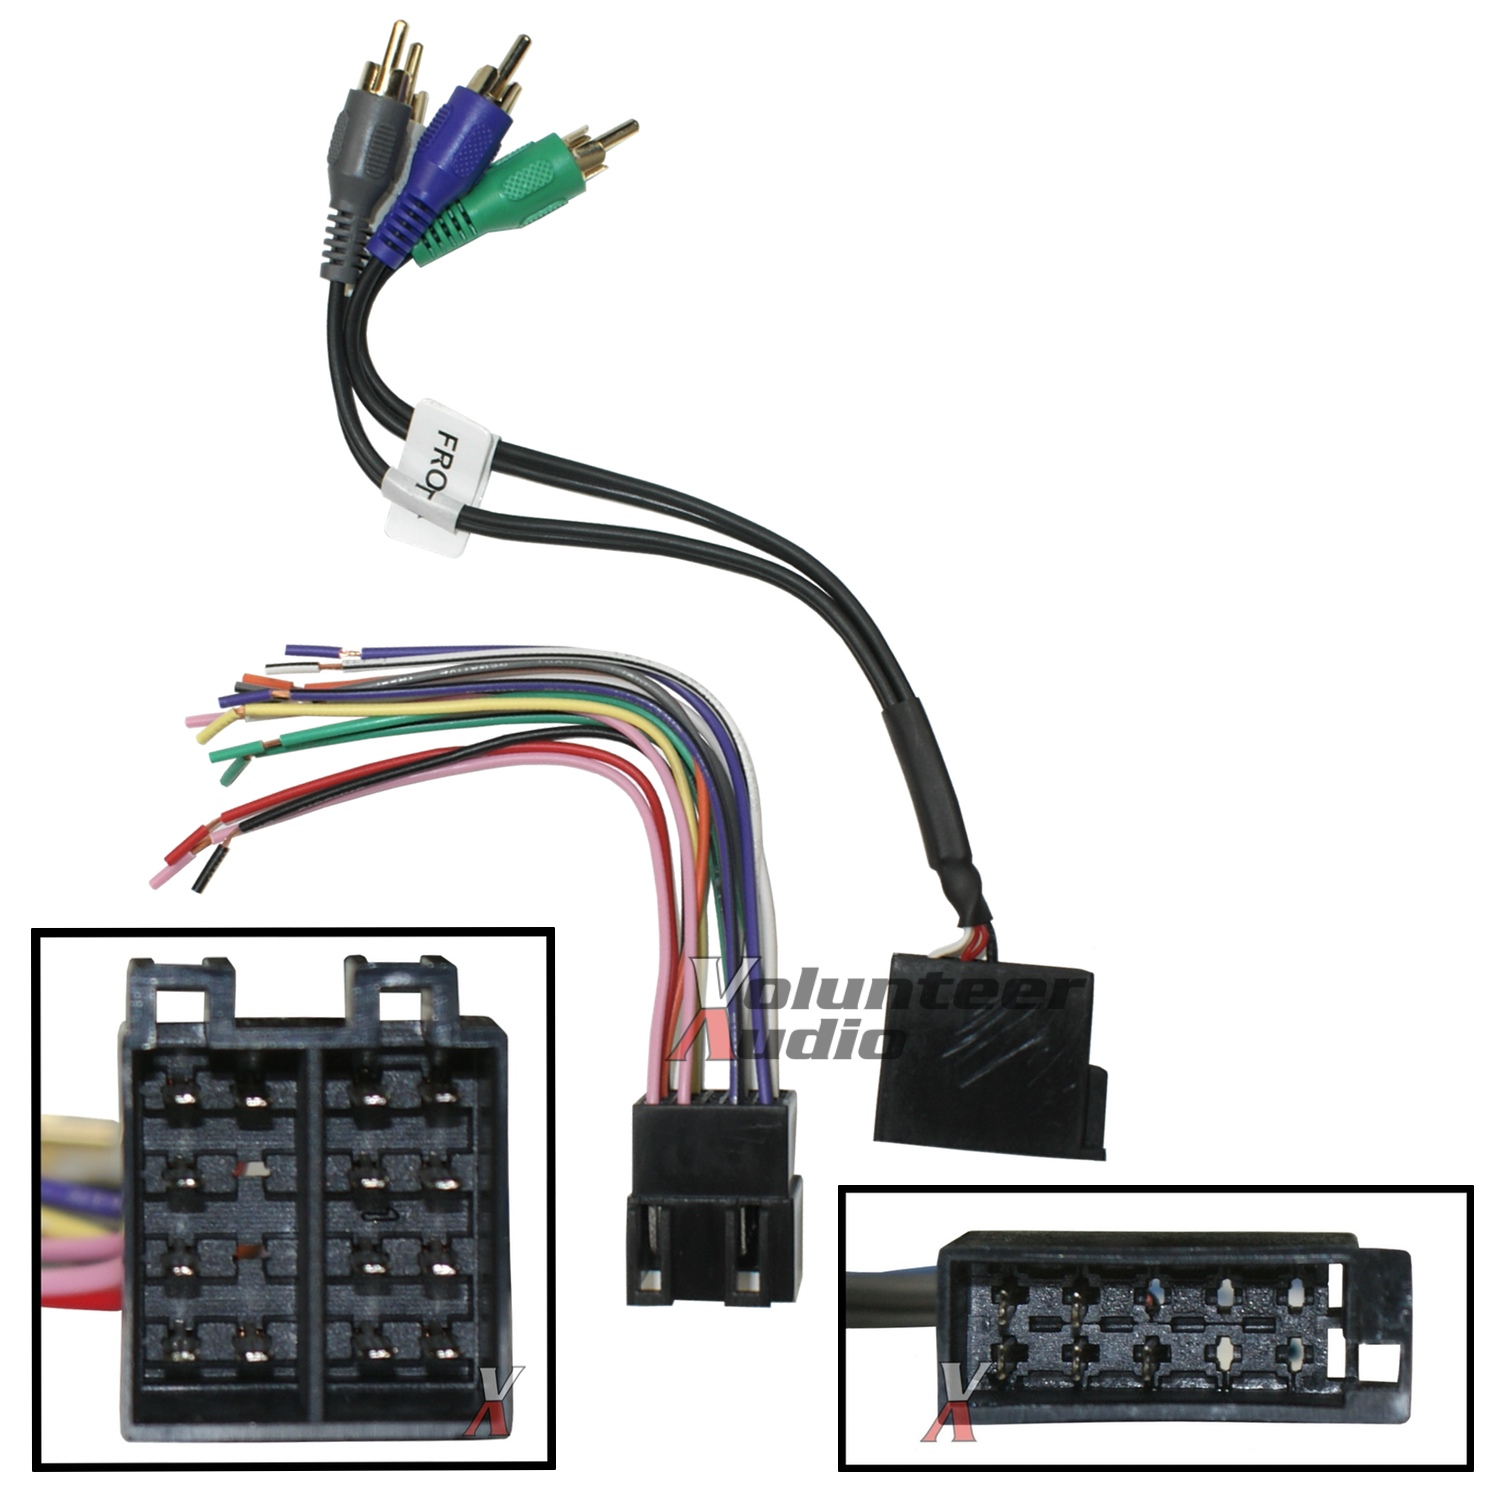 hight resolution of details about car stereo cd player wiring harness wire aftermarket radio install